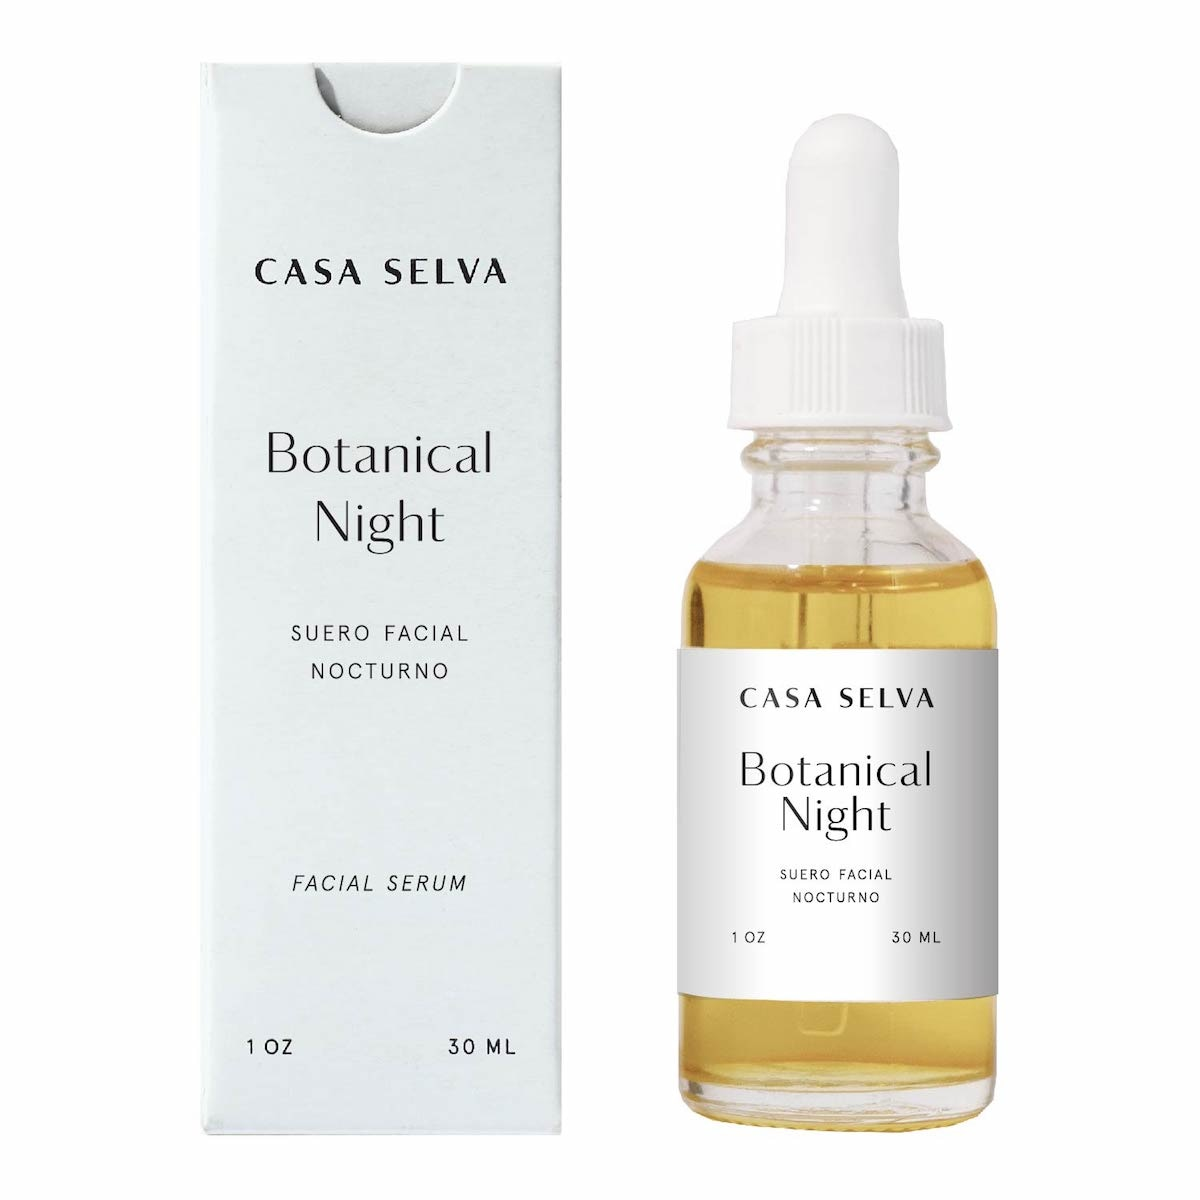 BOTANICAL NIGHT (SUERO FACIAL NOCTURNO)